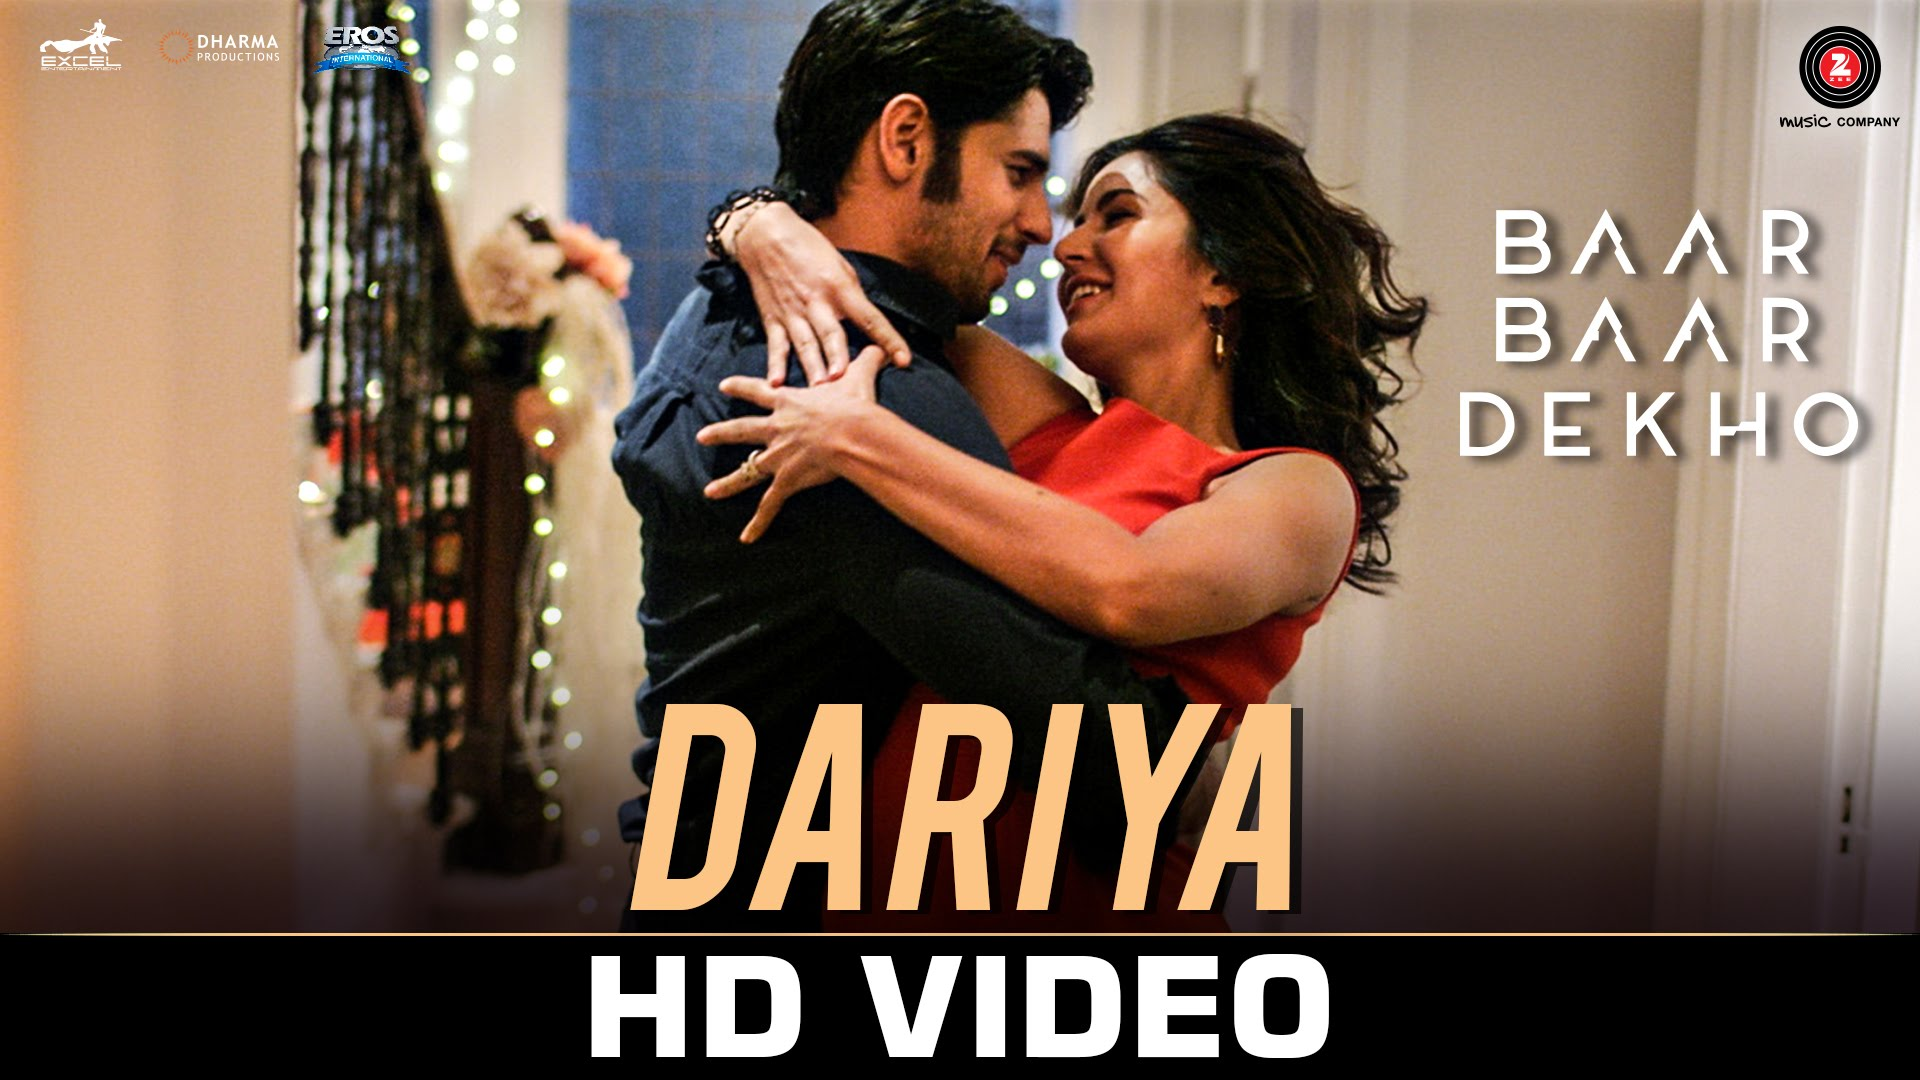 New Song Alert | Arko is the heart and soul of the heart-wrenching track 'Dariya'